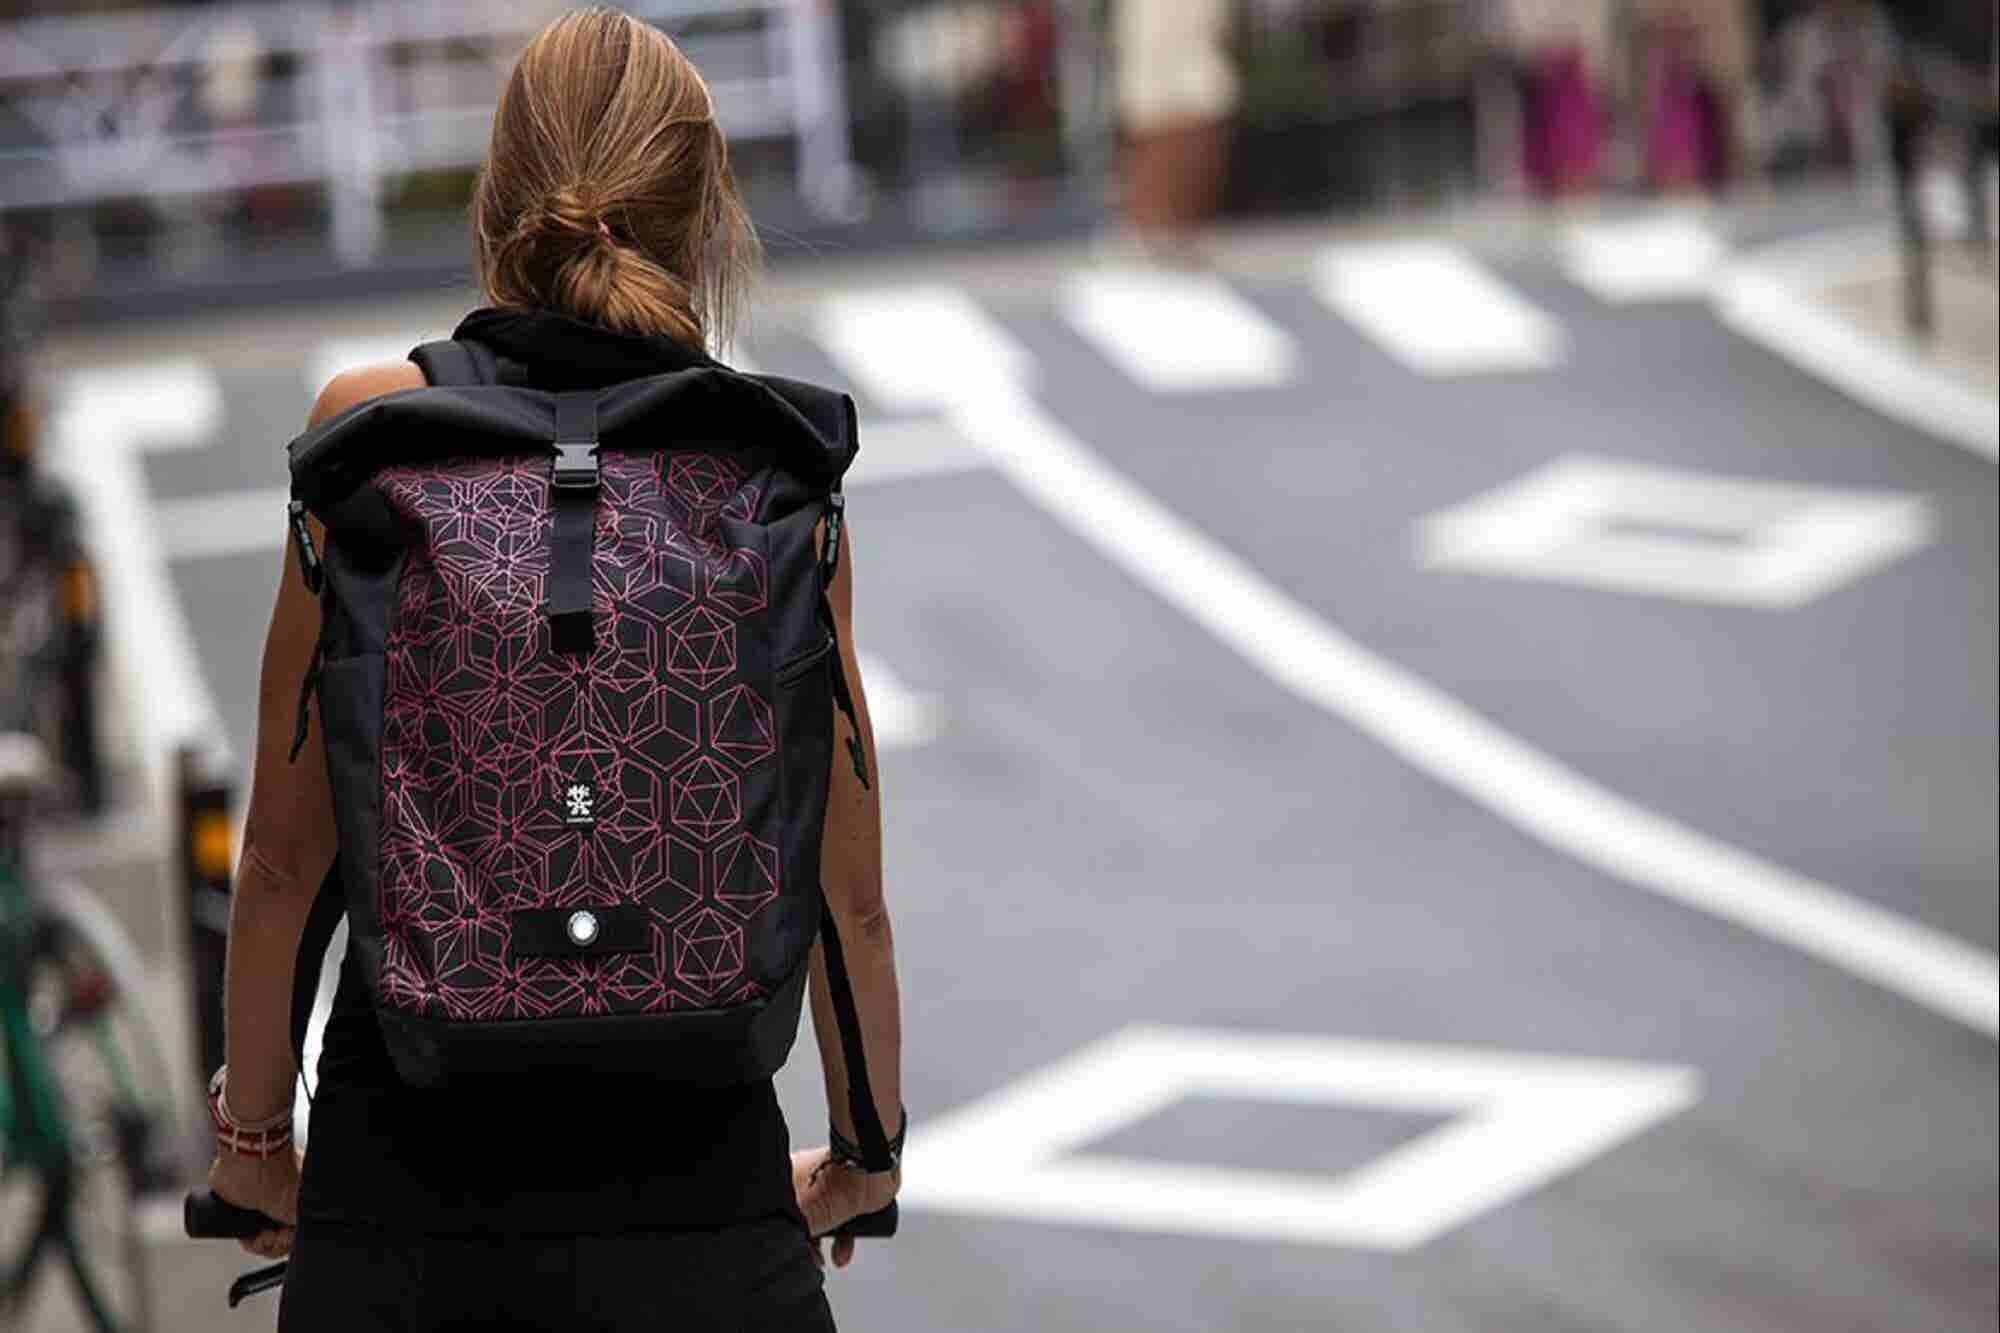 Australian Bag Maker Crumpler Rolls Out Expansion to China And Taiwan